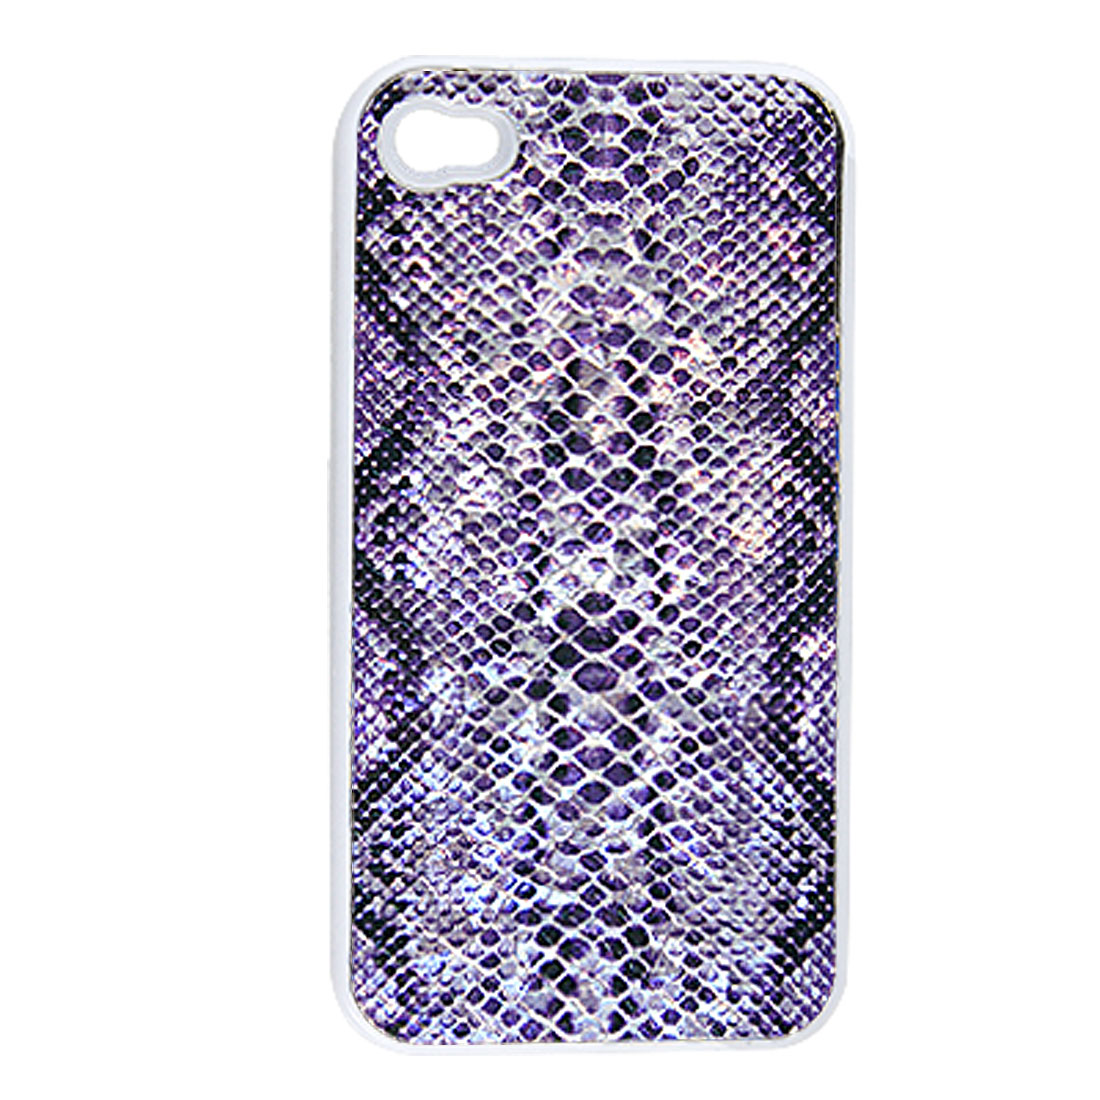 Purple Black Snake Pattern Hard Back Case for iPhone 4 4G 4S